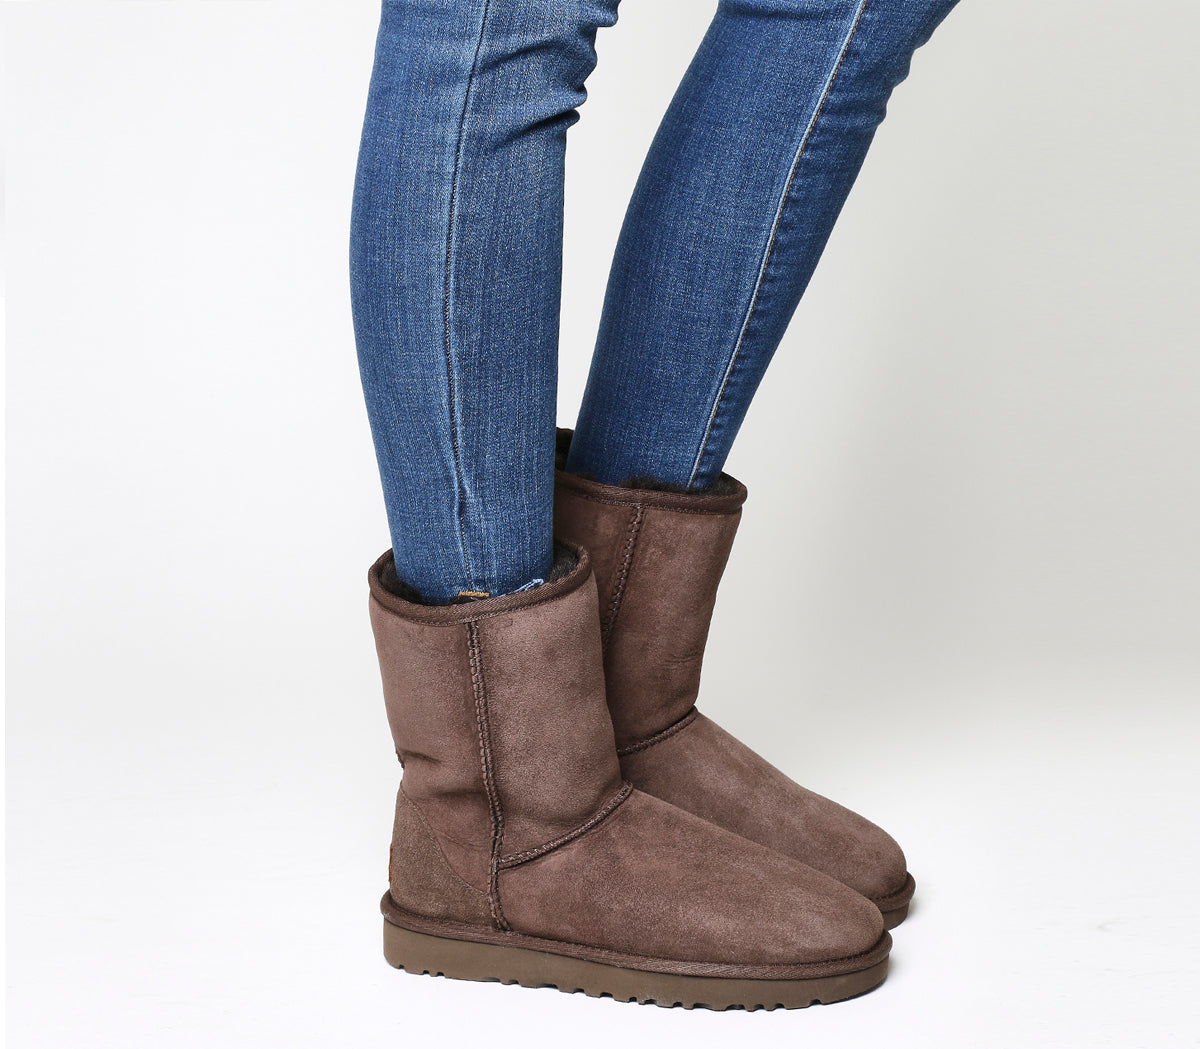 4a486981c971 Womens Ugg Classic Short II Boots Chocolate Suede – OFFCUTS SHOES by OFFICE